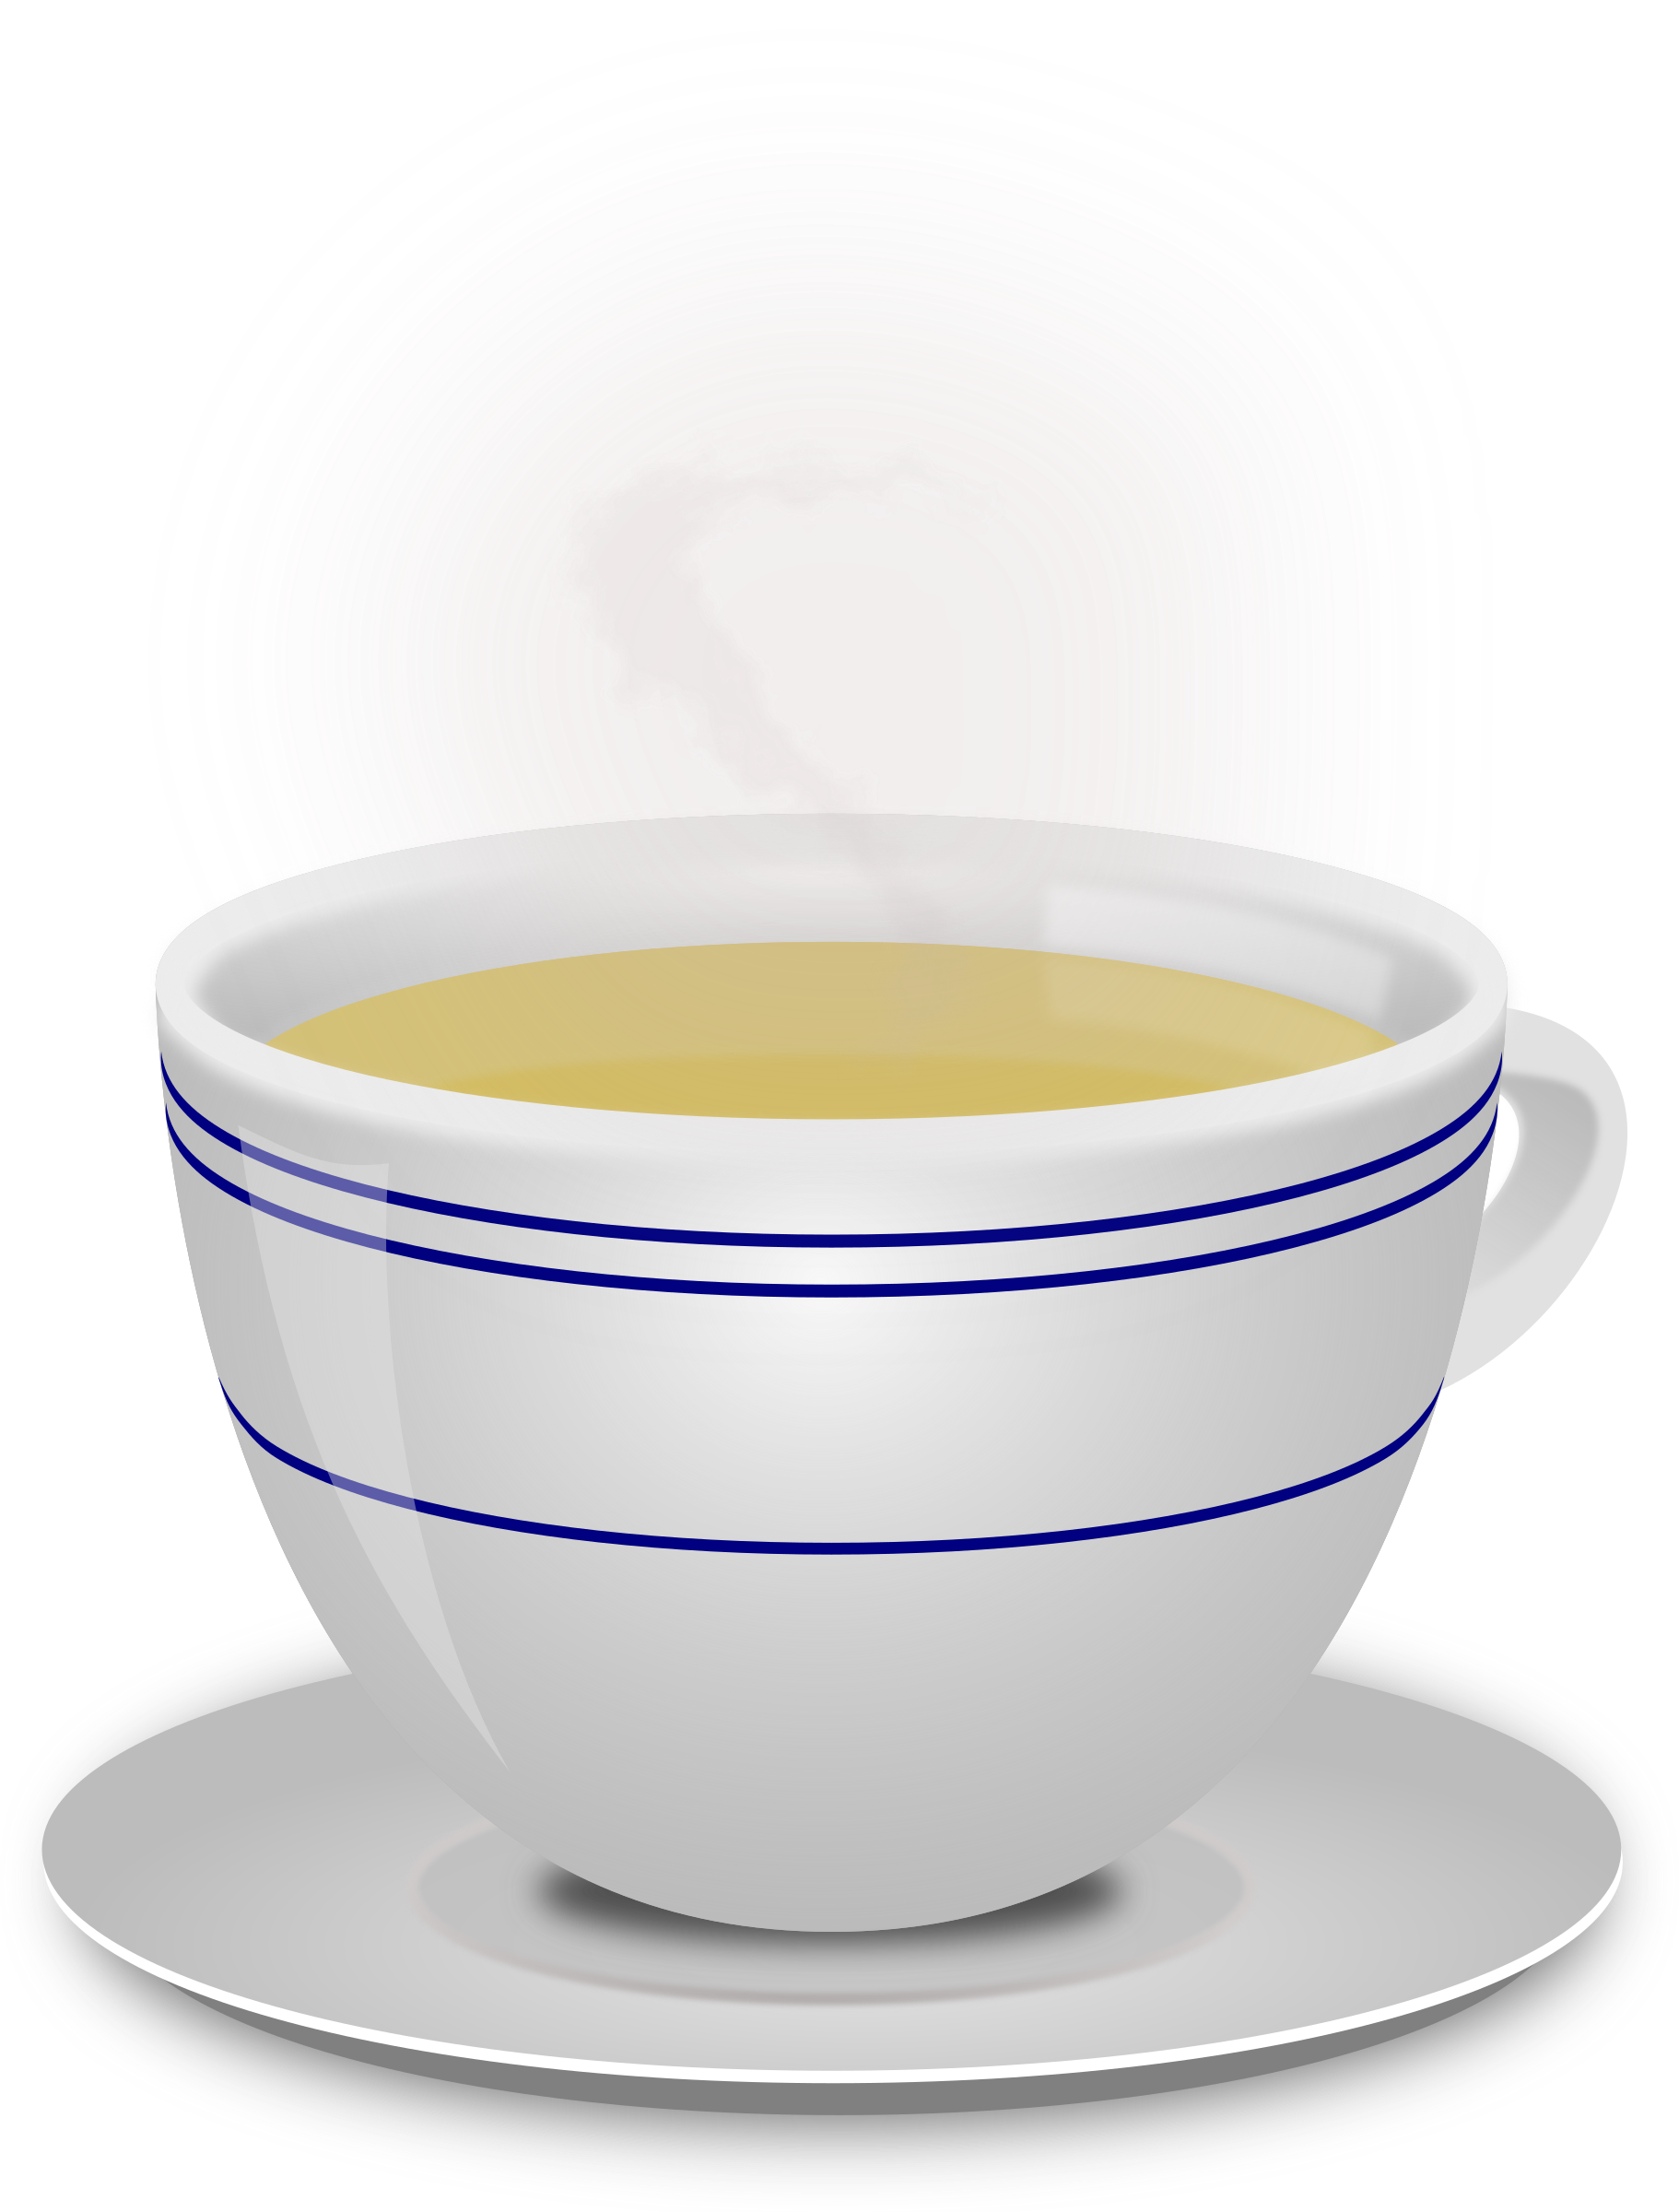 Tea clipart steaming bowl. Cup of big image